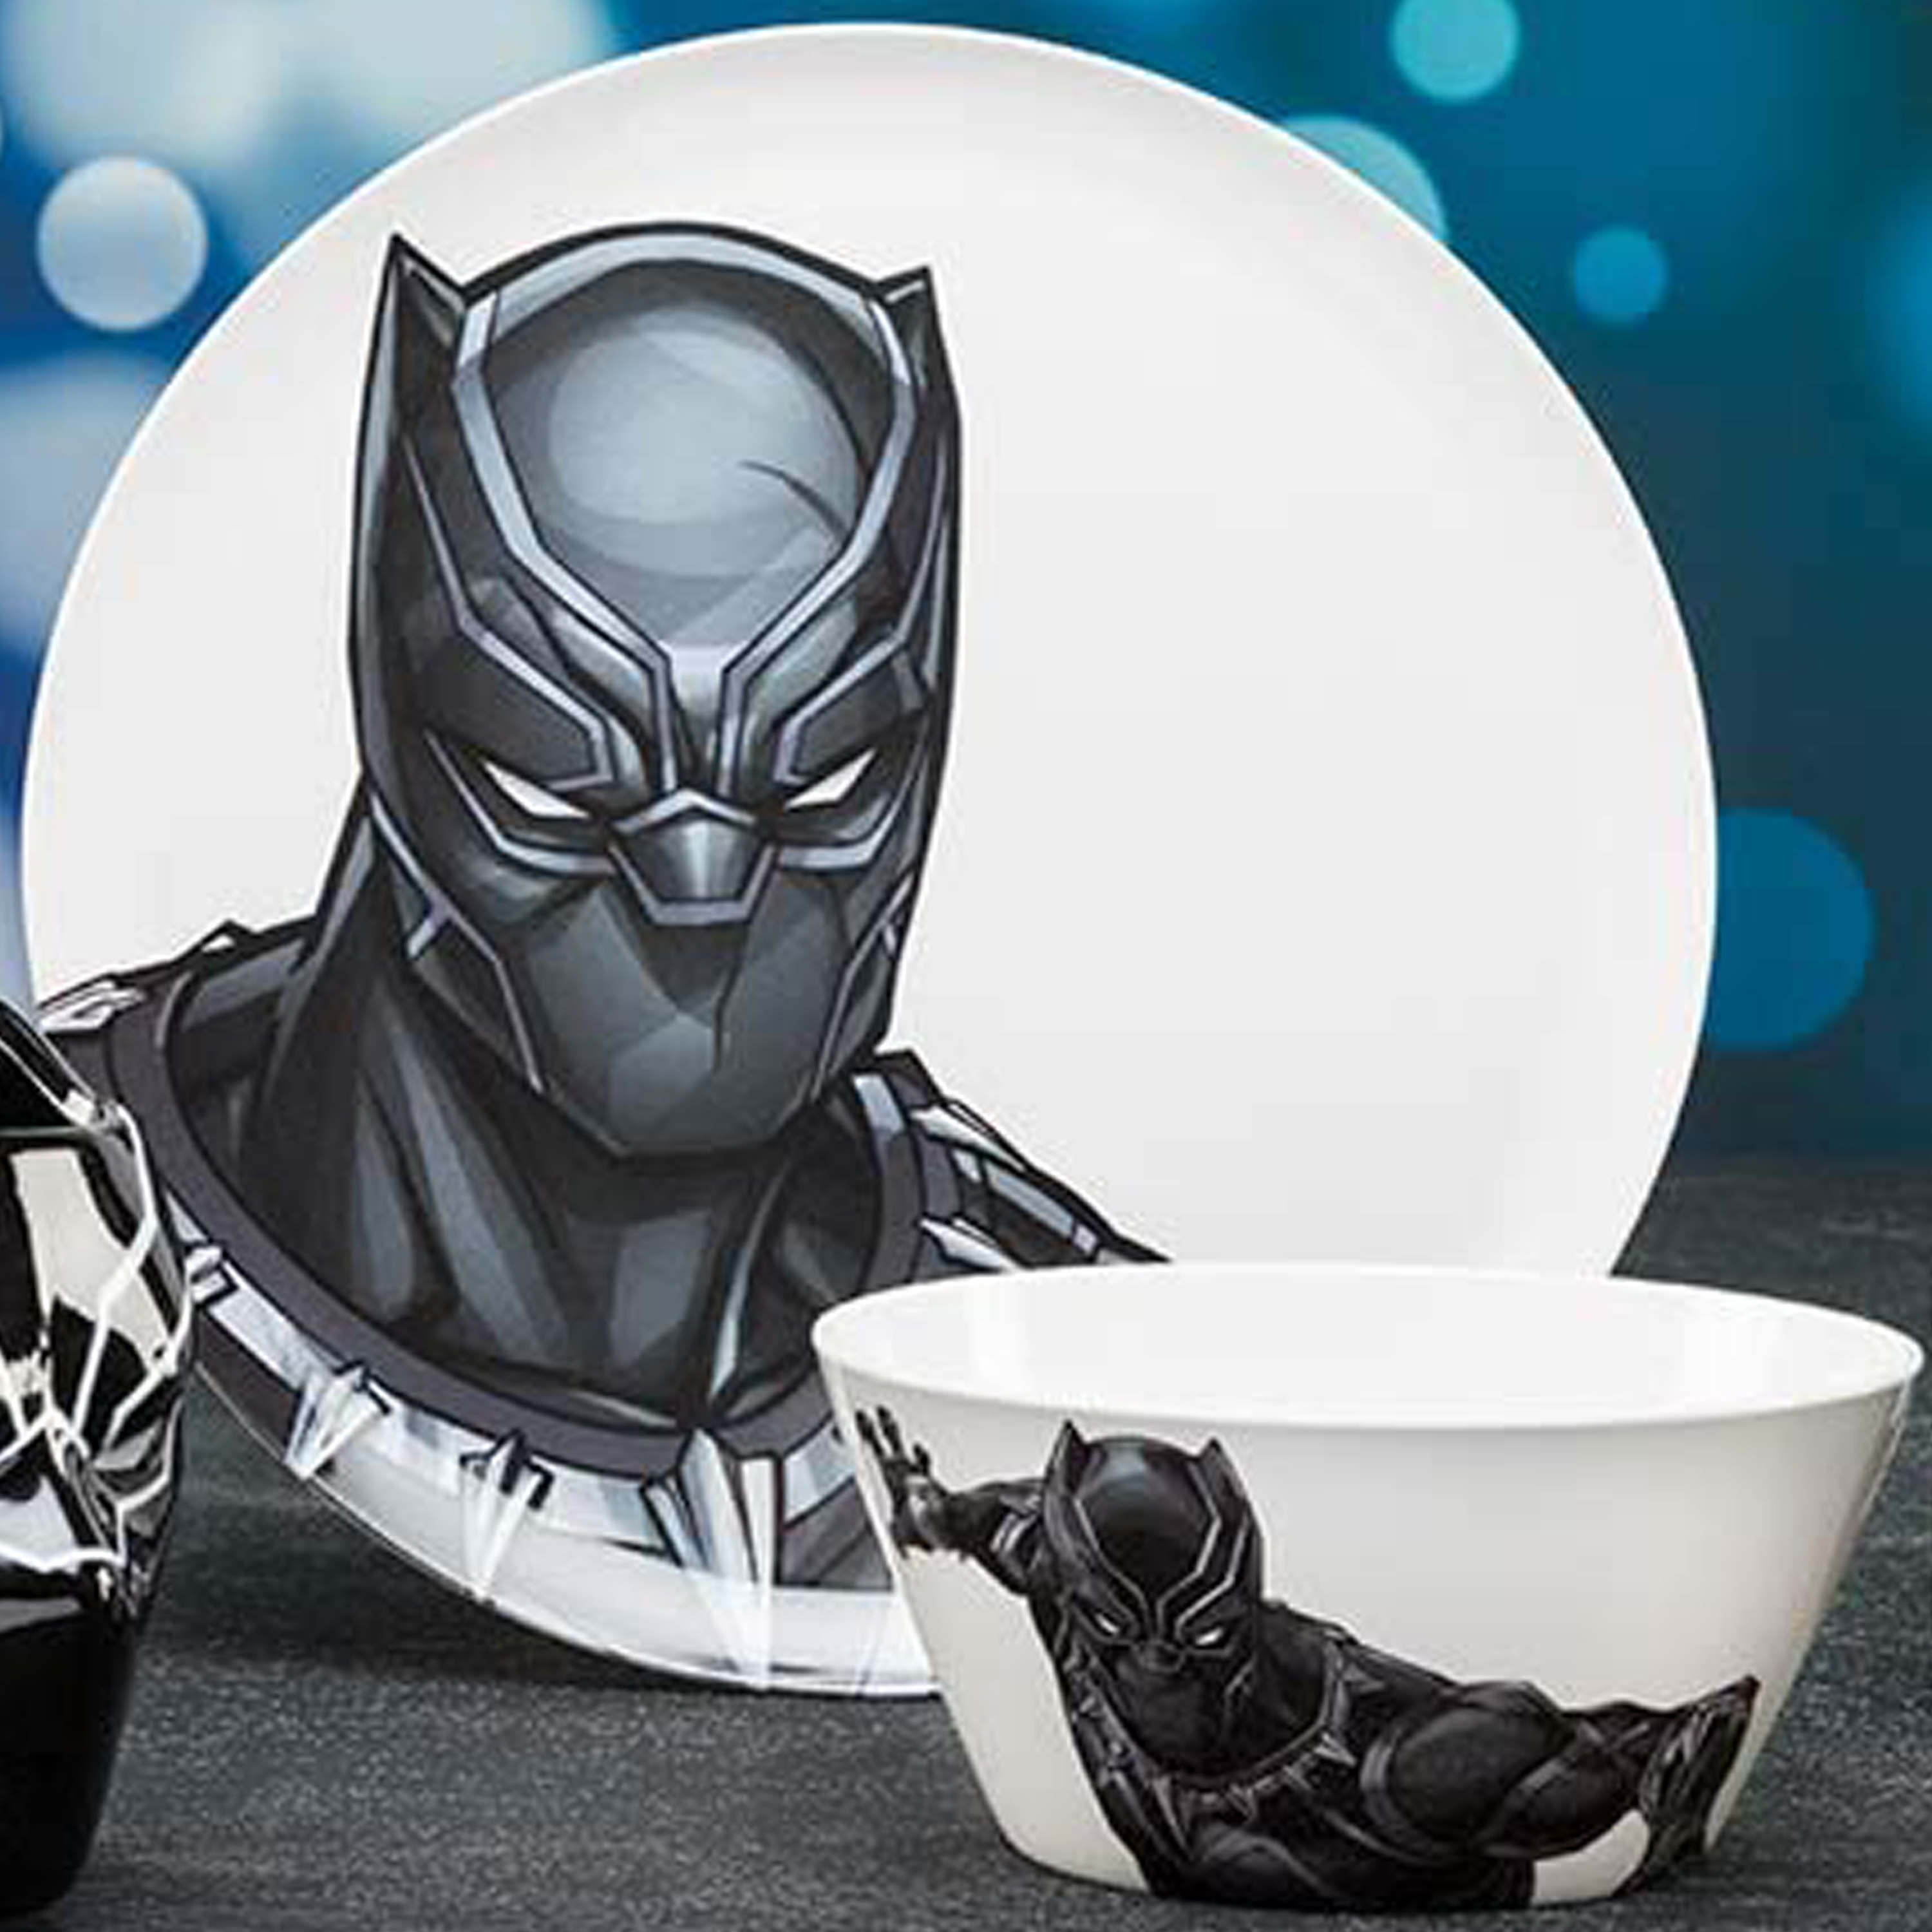 Marvel Comics Dinnerware Set, Black Panther & The Avengers, 2-piece set slideshow image 9